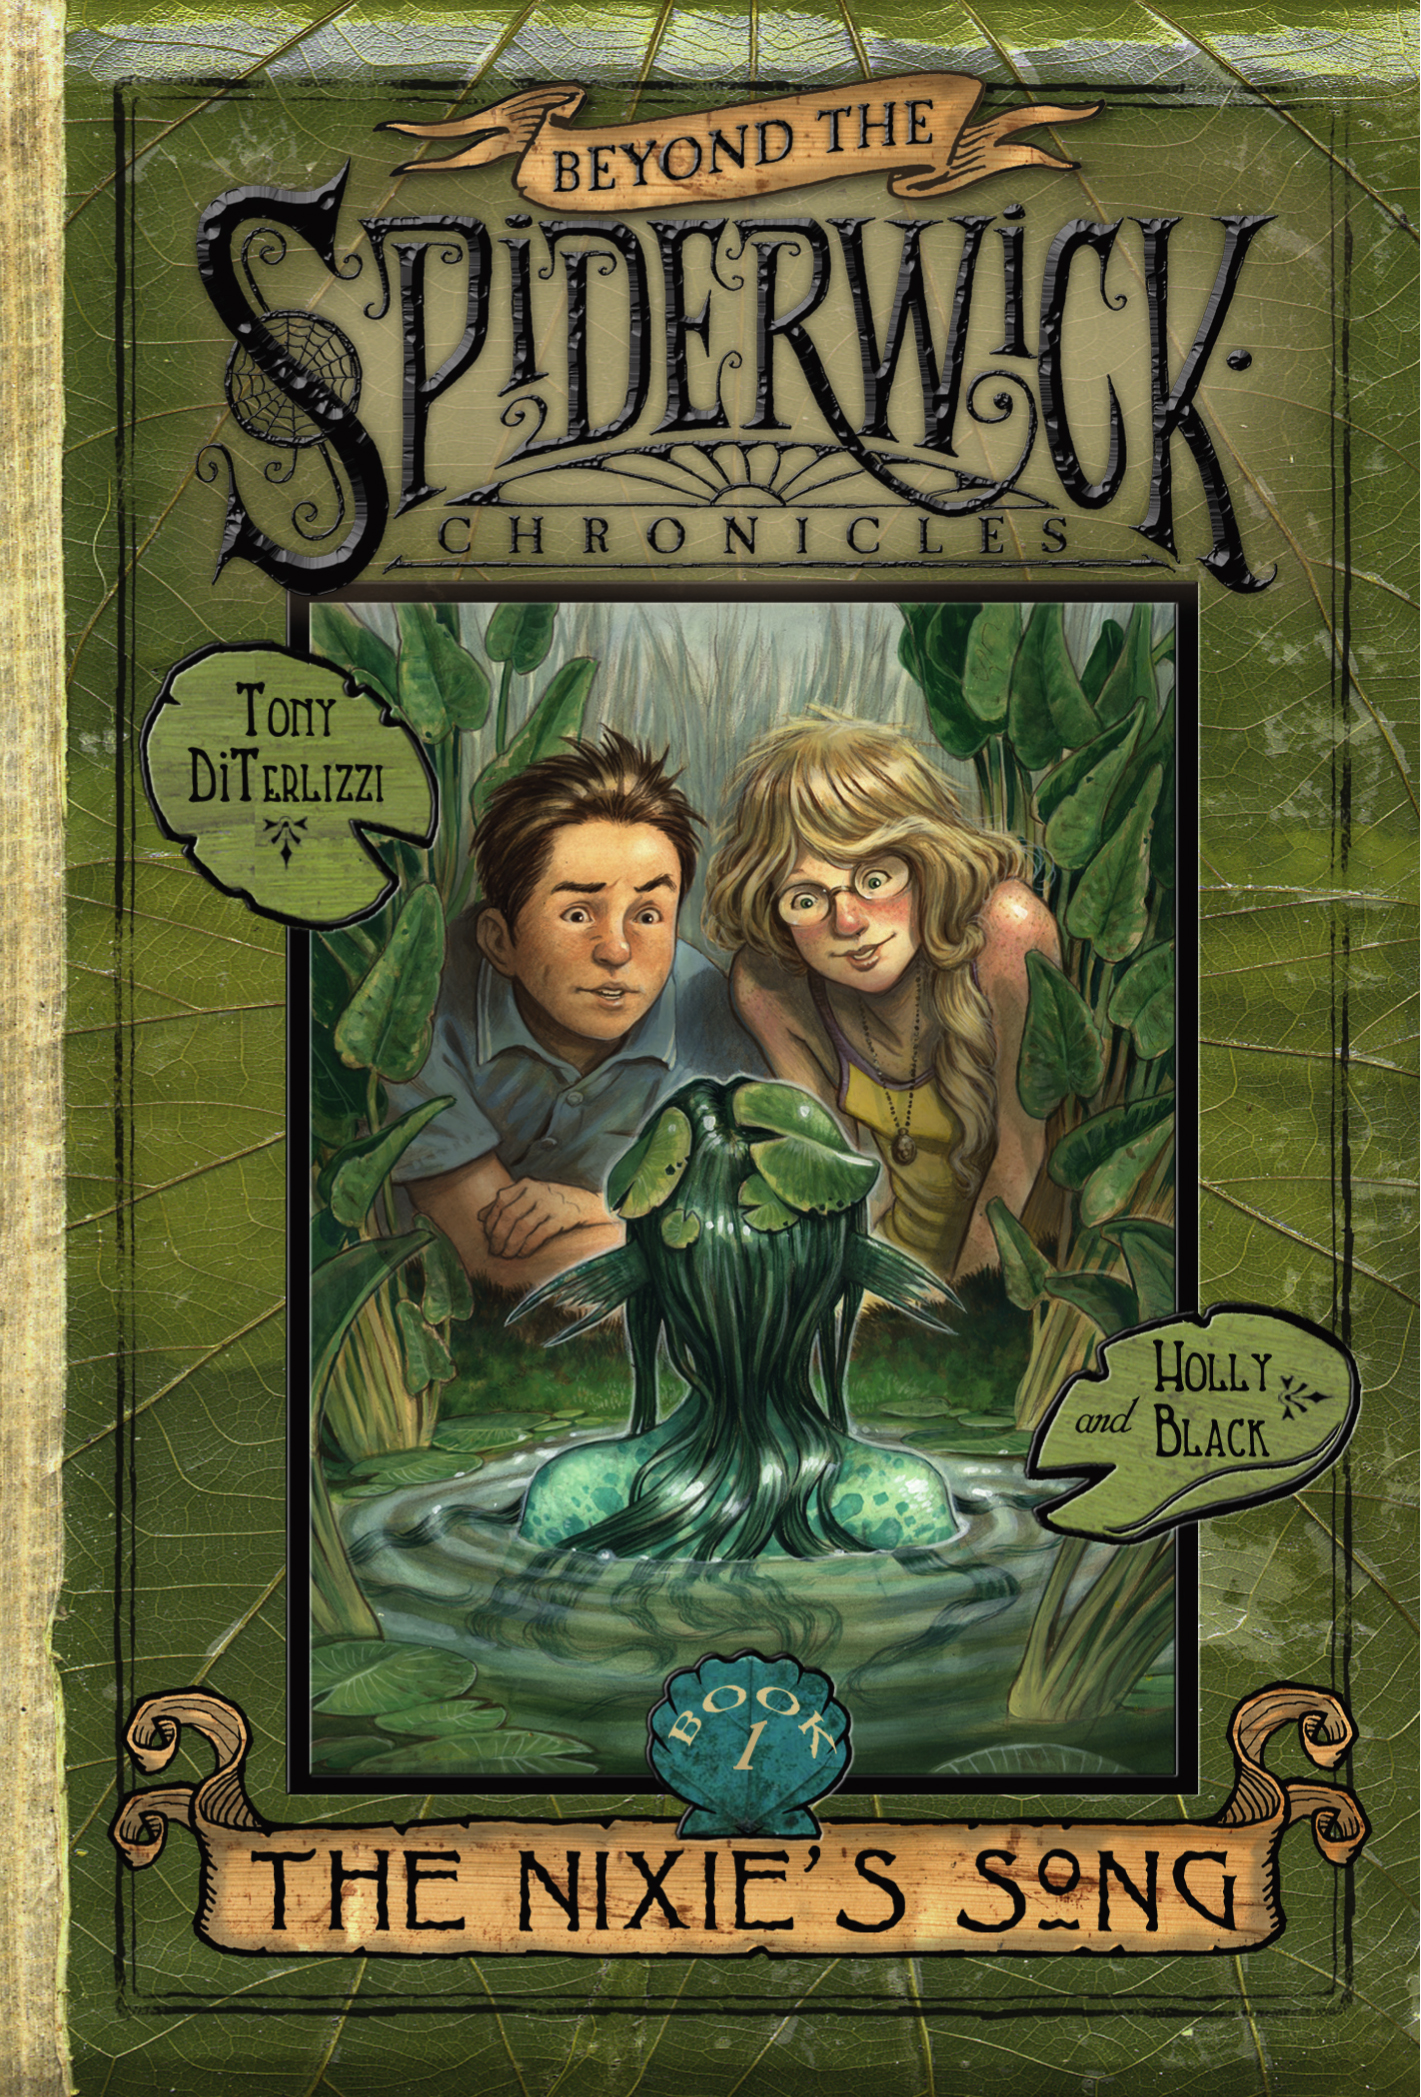 spiderwick chronicles Metacritic game reviews, the spiderwick chronicles for playstation 2, the spiderwick chronicles is a video game based on the theatrical release by paramount pictures and nickelodeon films.